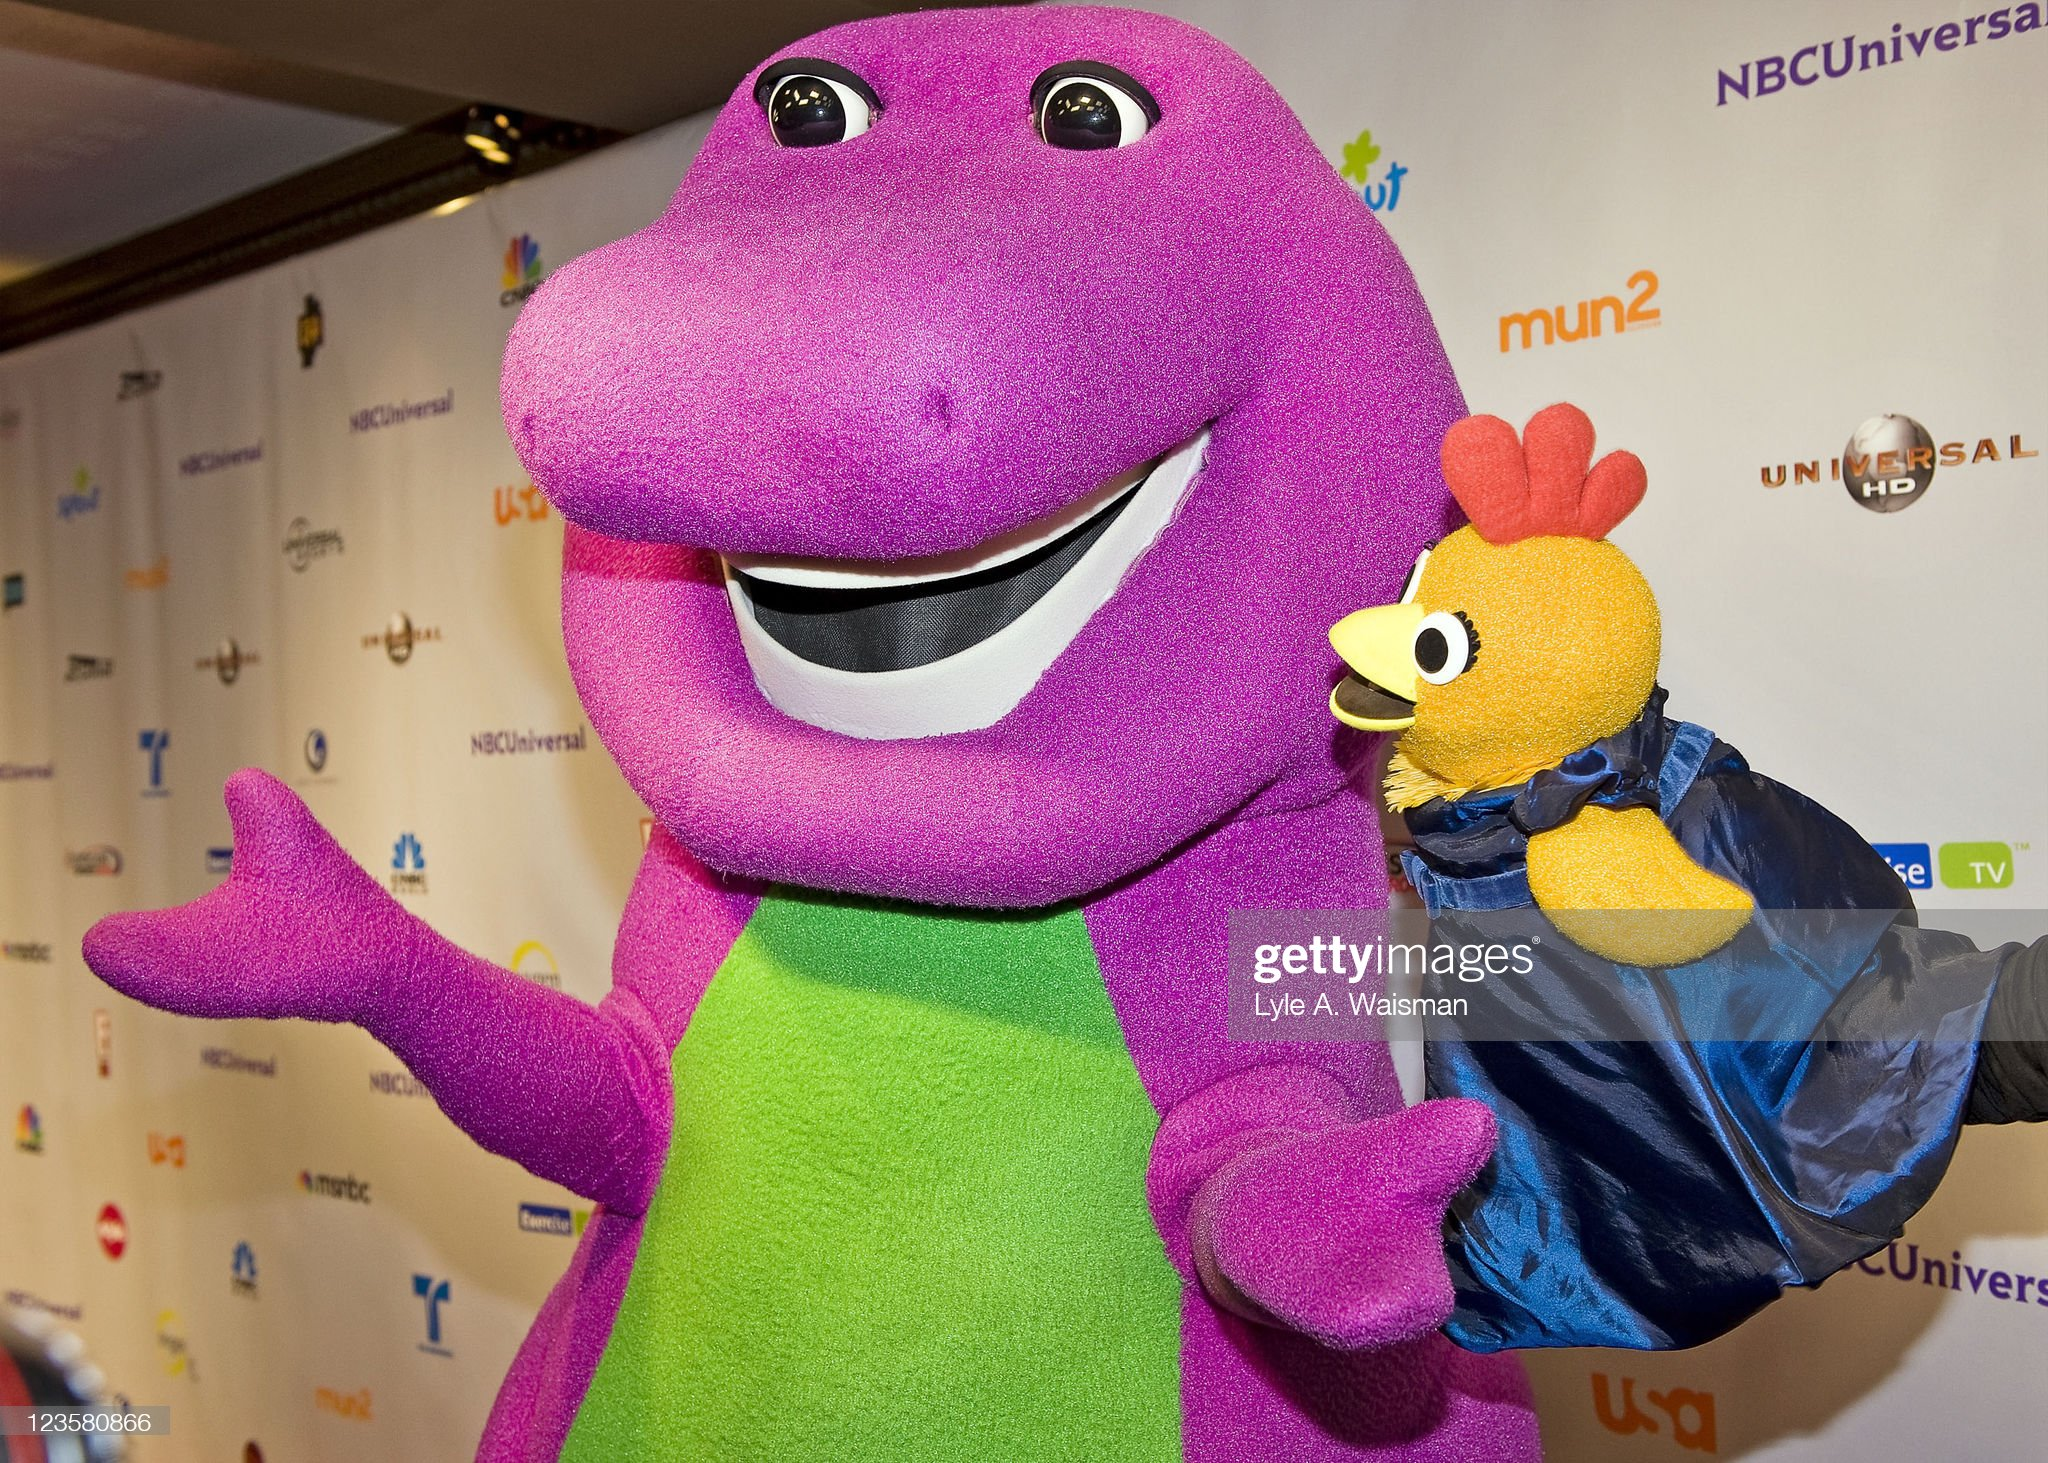 Where is 'Barney' today?